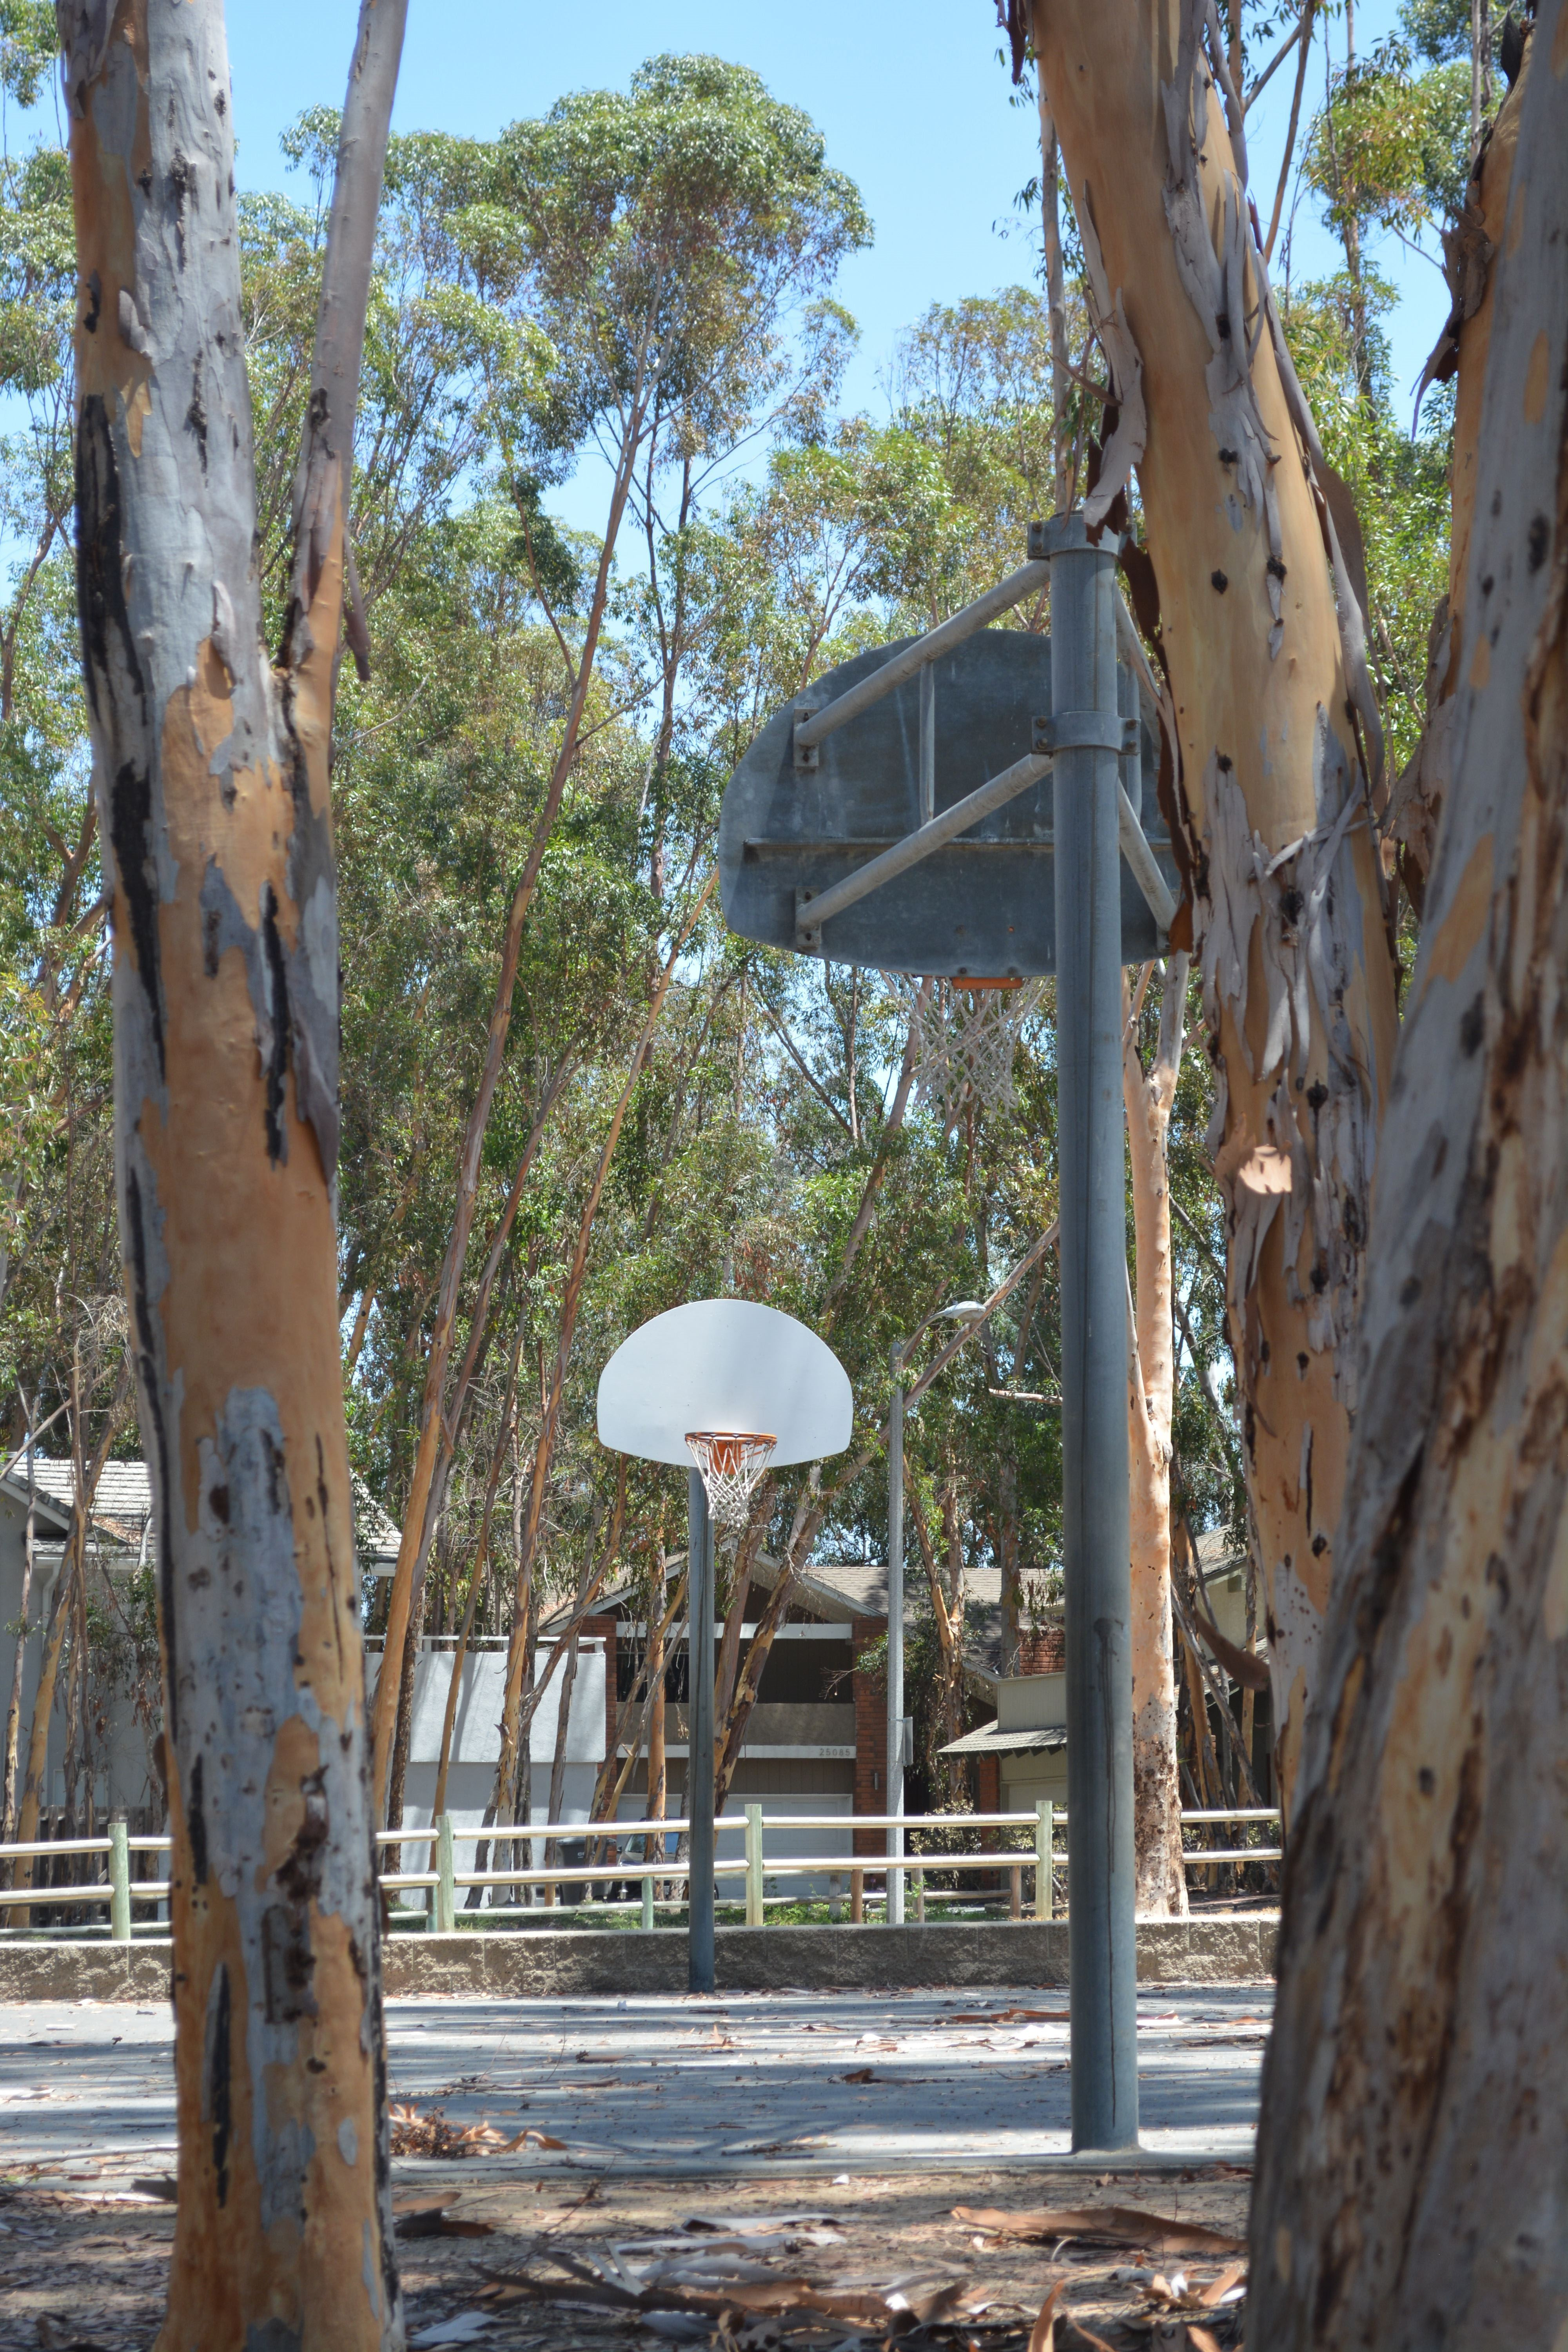 Looking at basketball court through the trees.